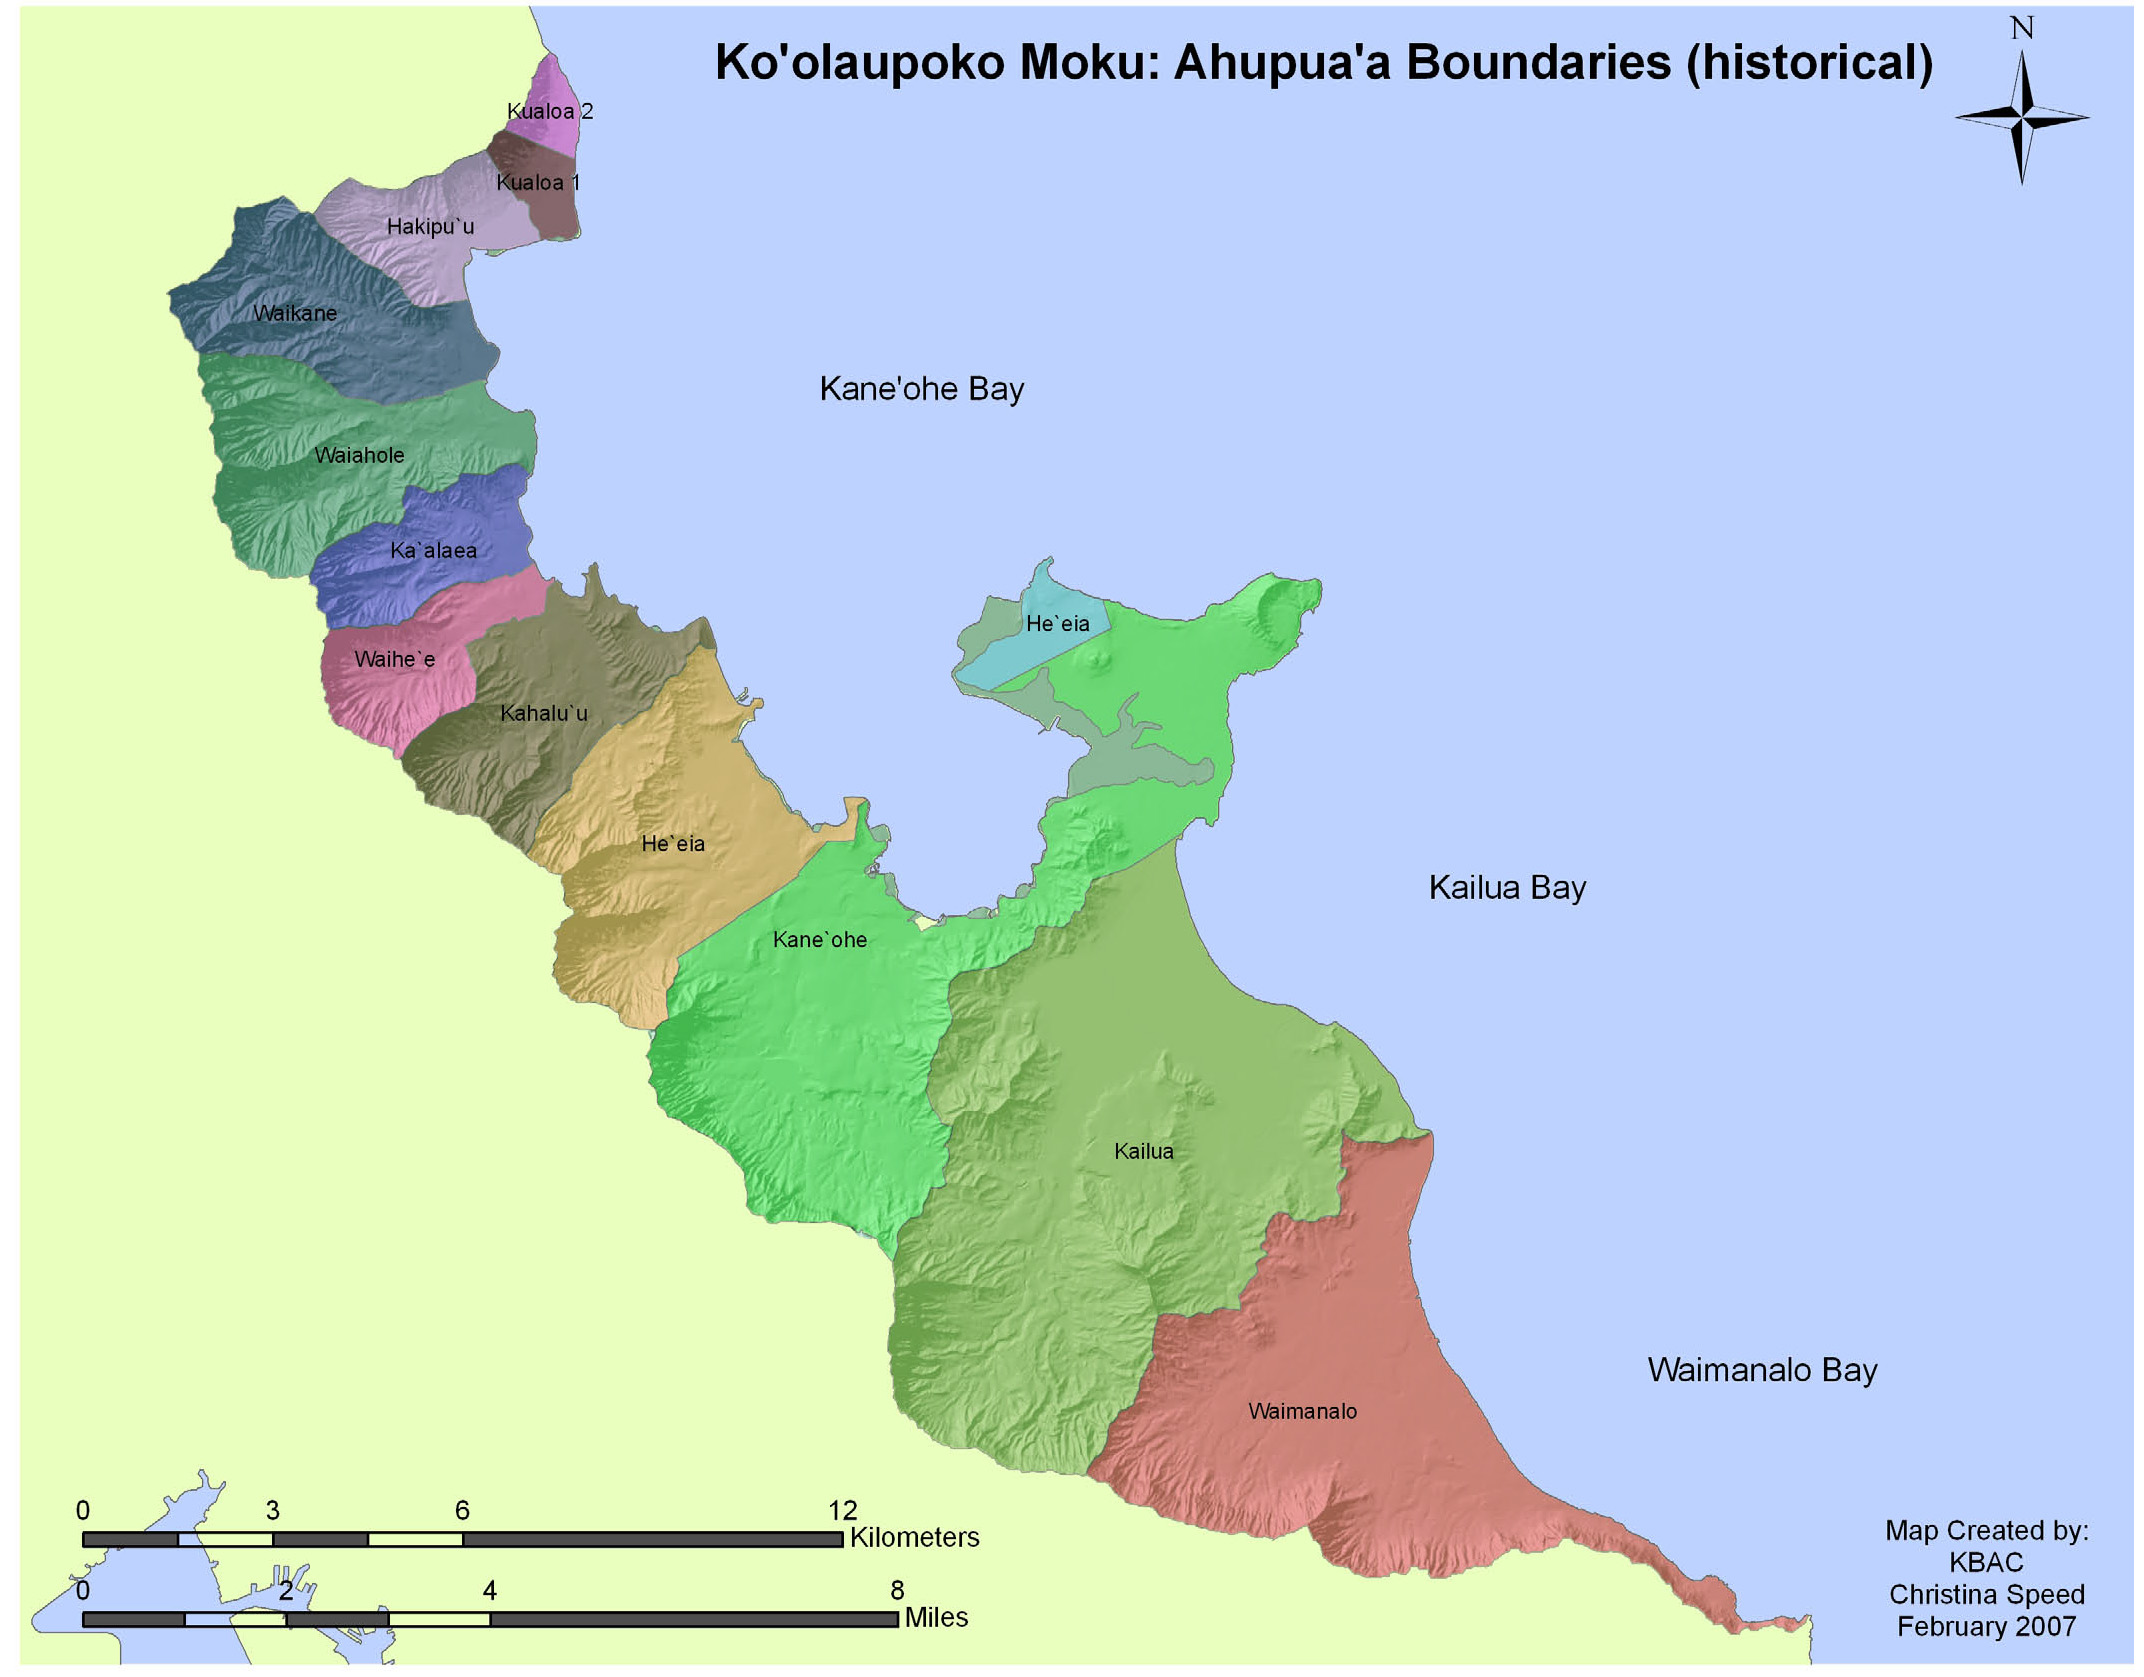 Historic ahupuaa map for Koolaupoko